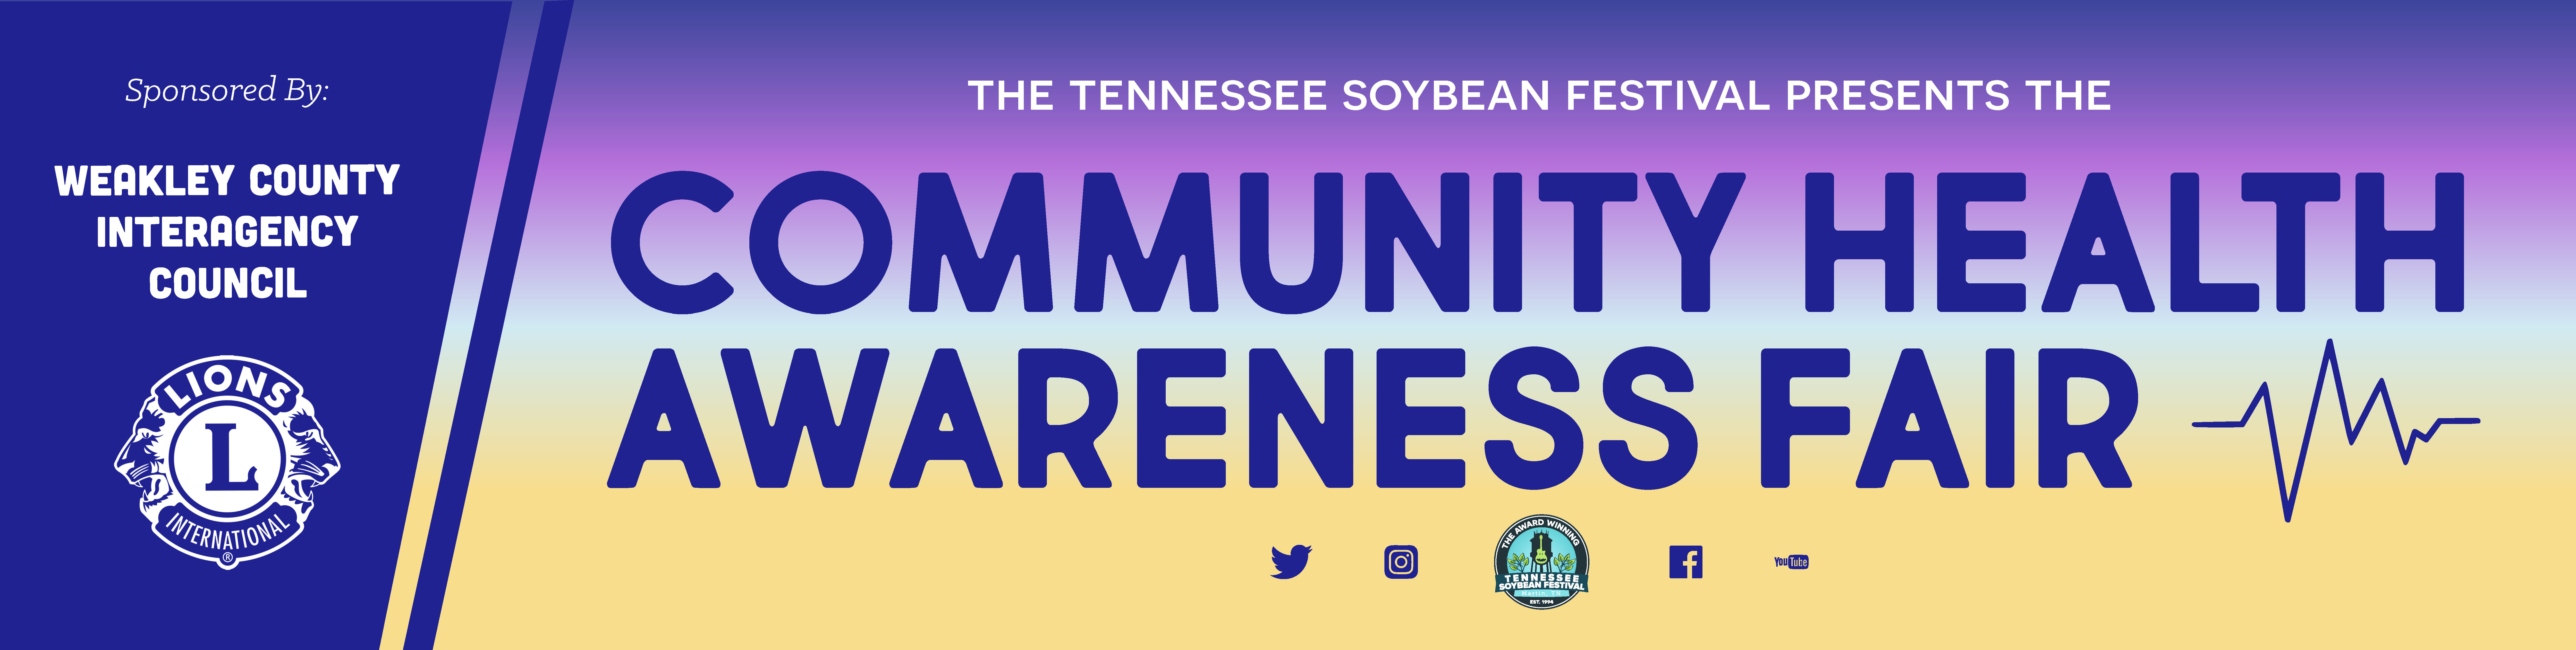 Festival Schedule - Tennessee Soybean Festival : Tennessee Soybean